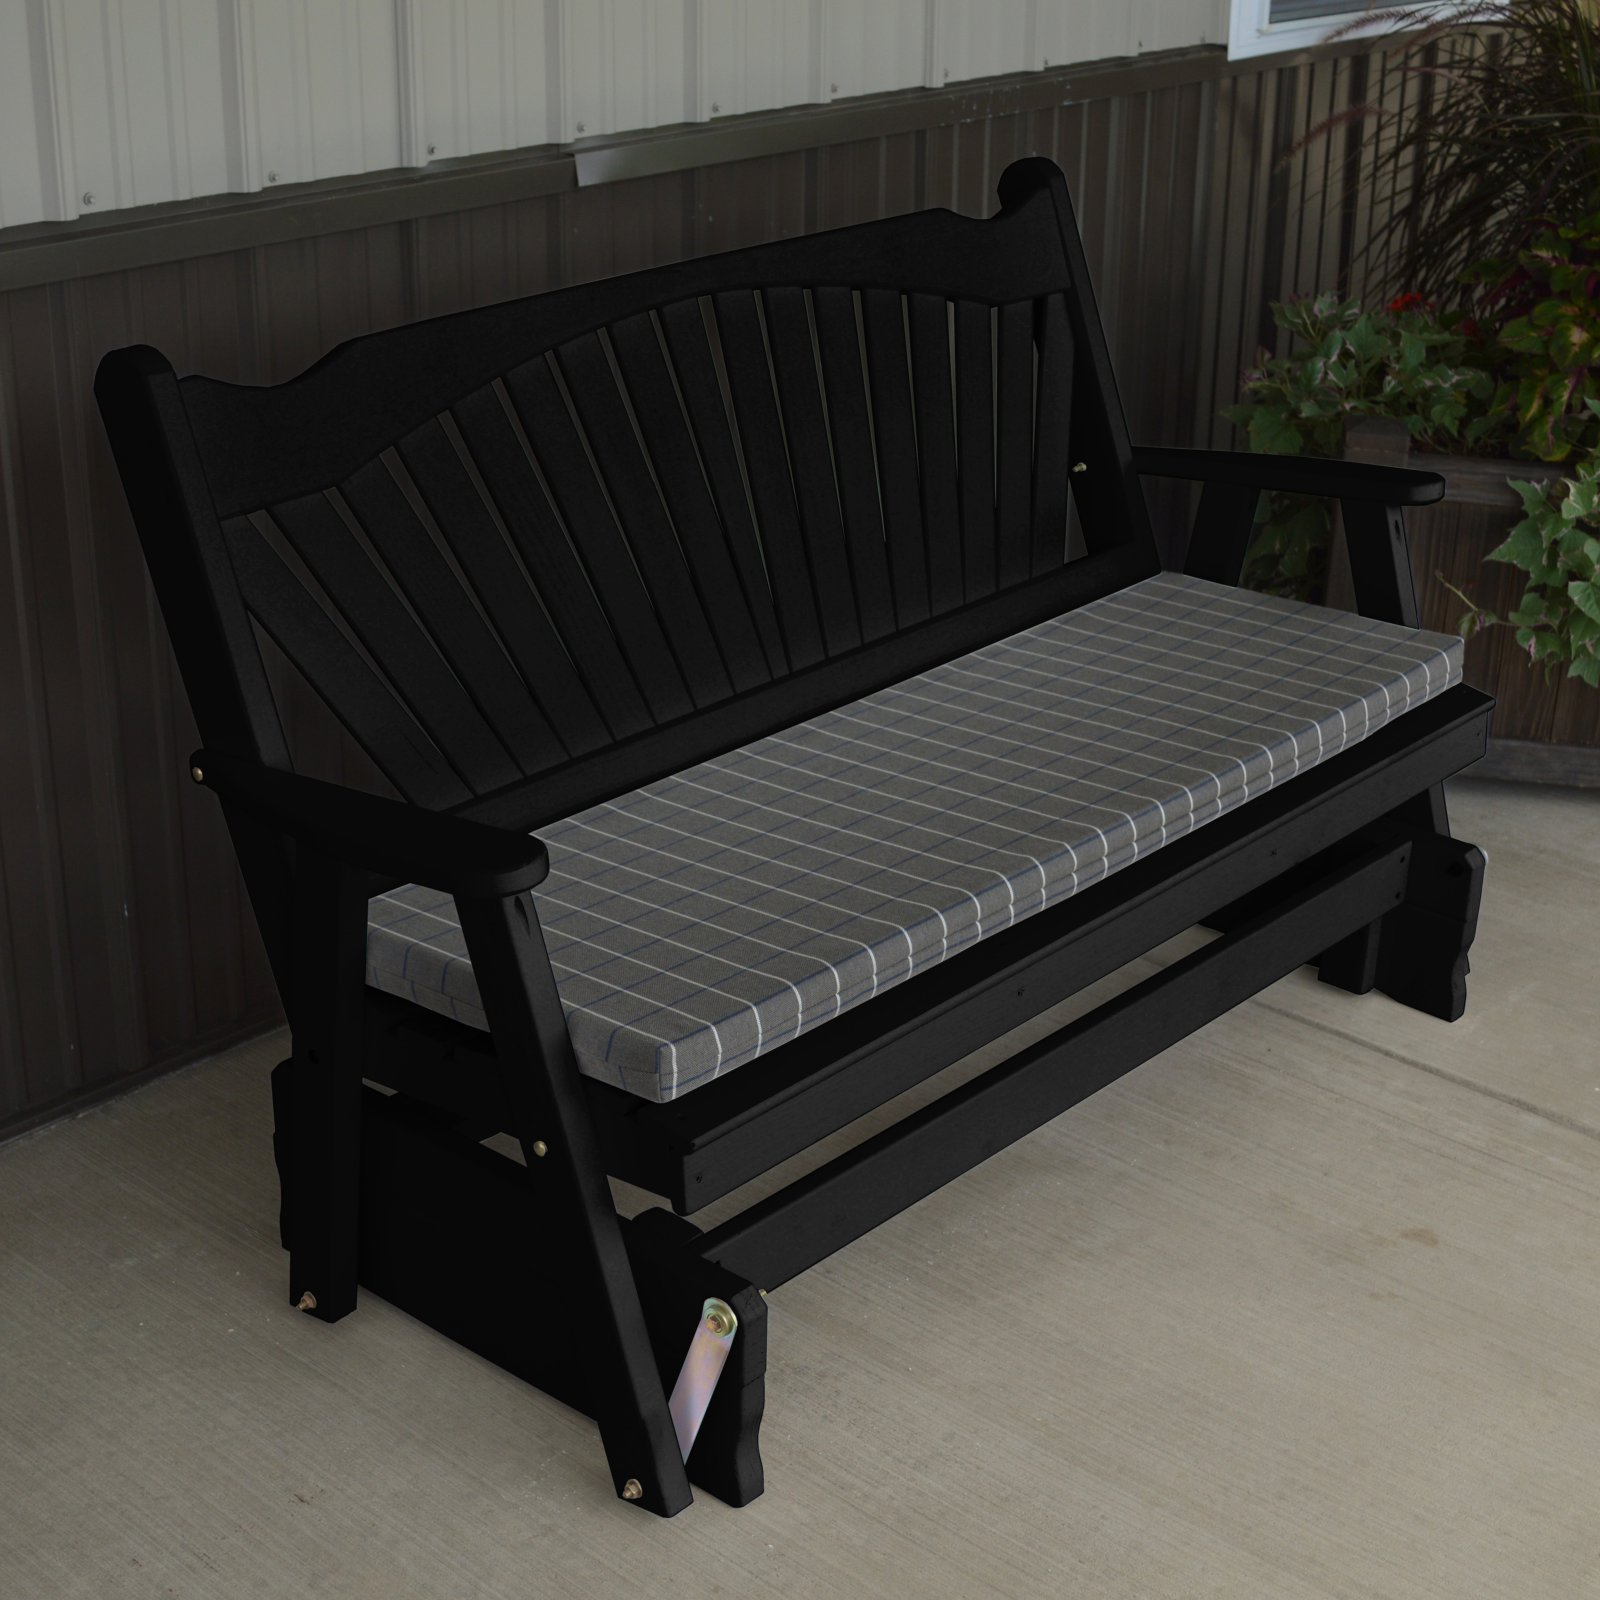 A & L Furniture Yellow Pine Fanback Outdoor Bench Glider